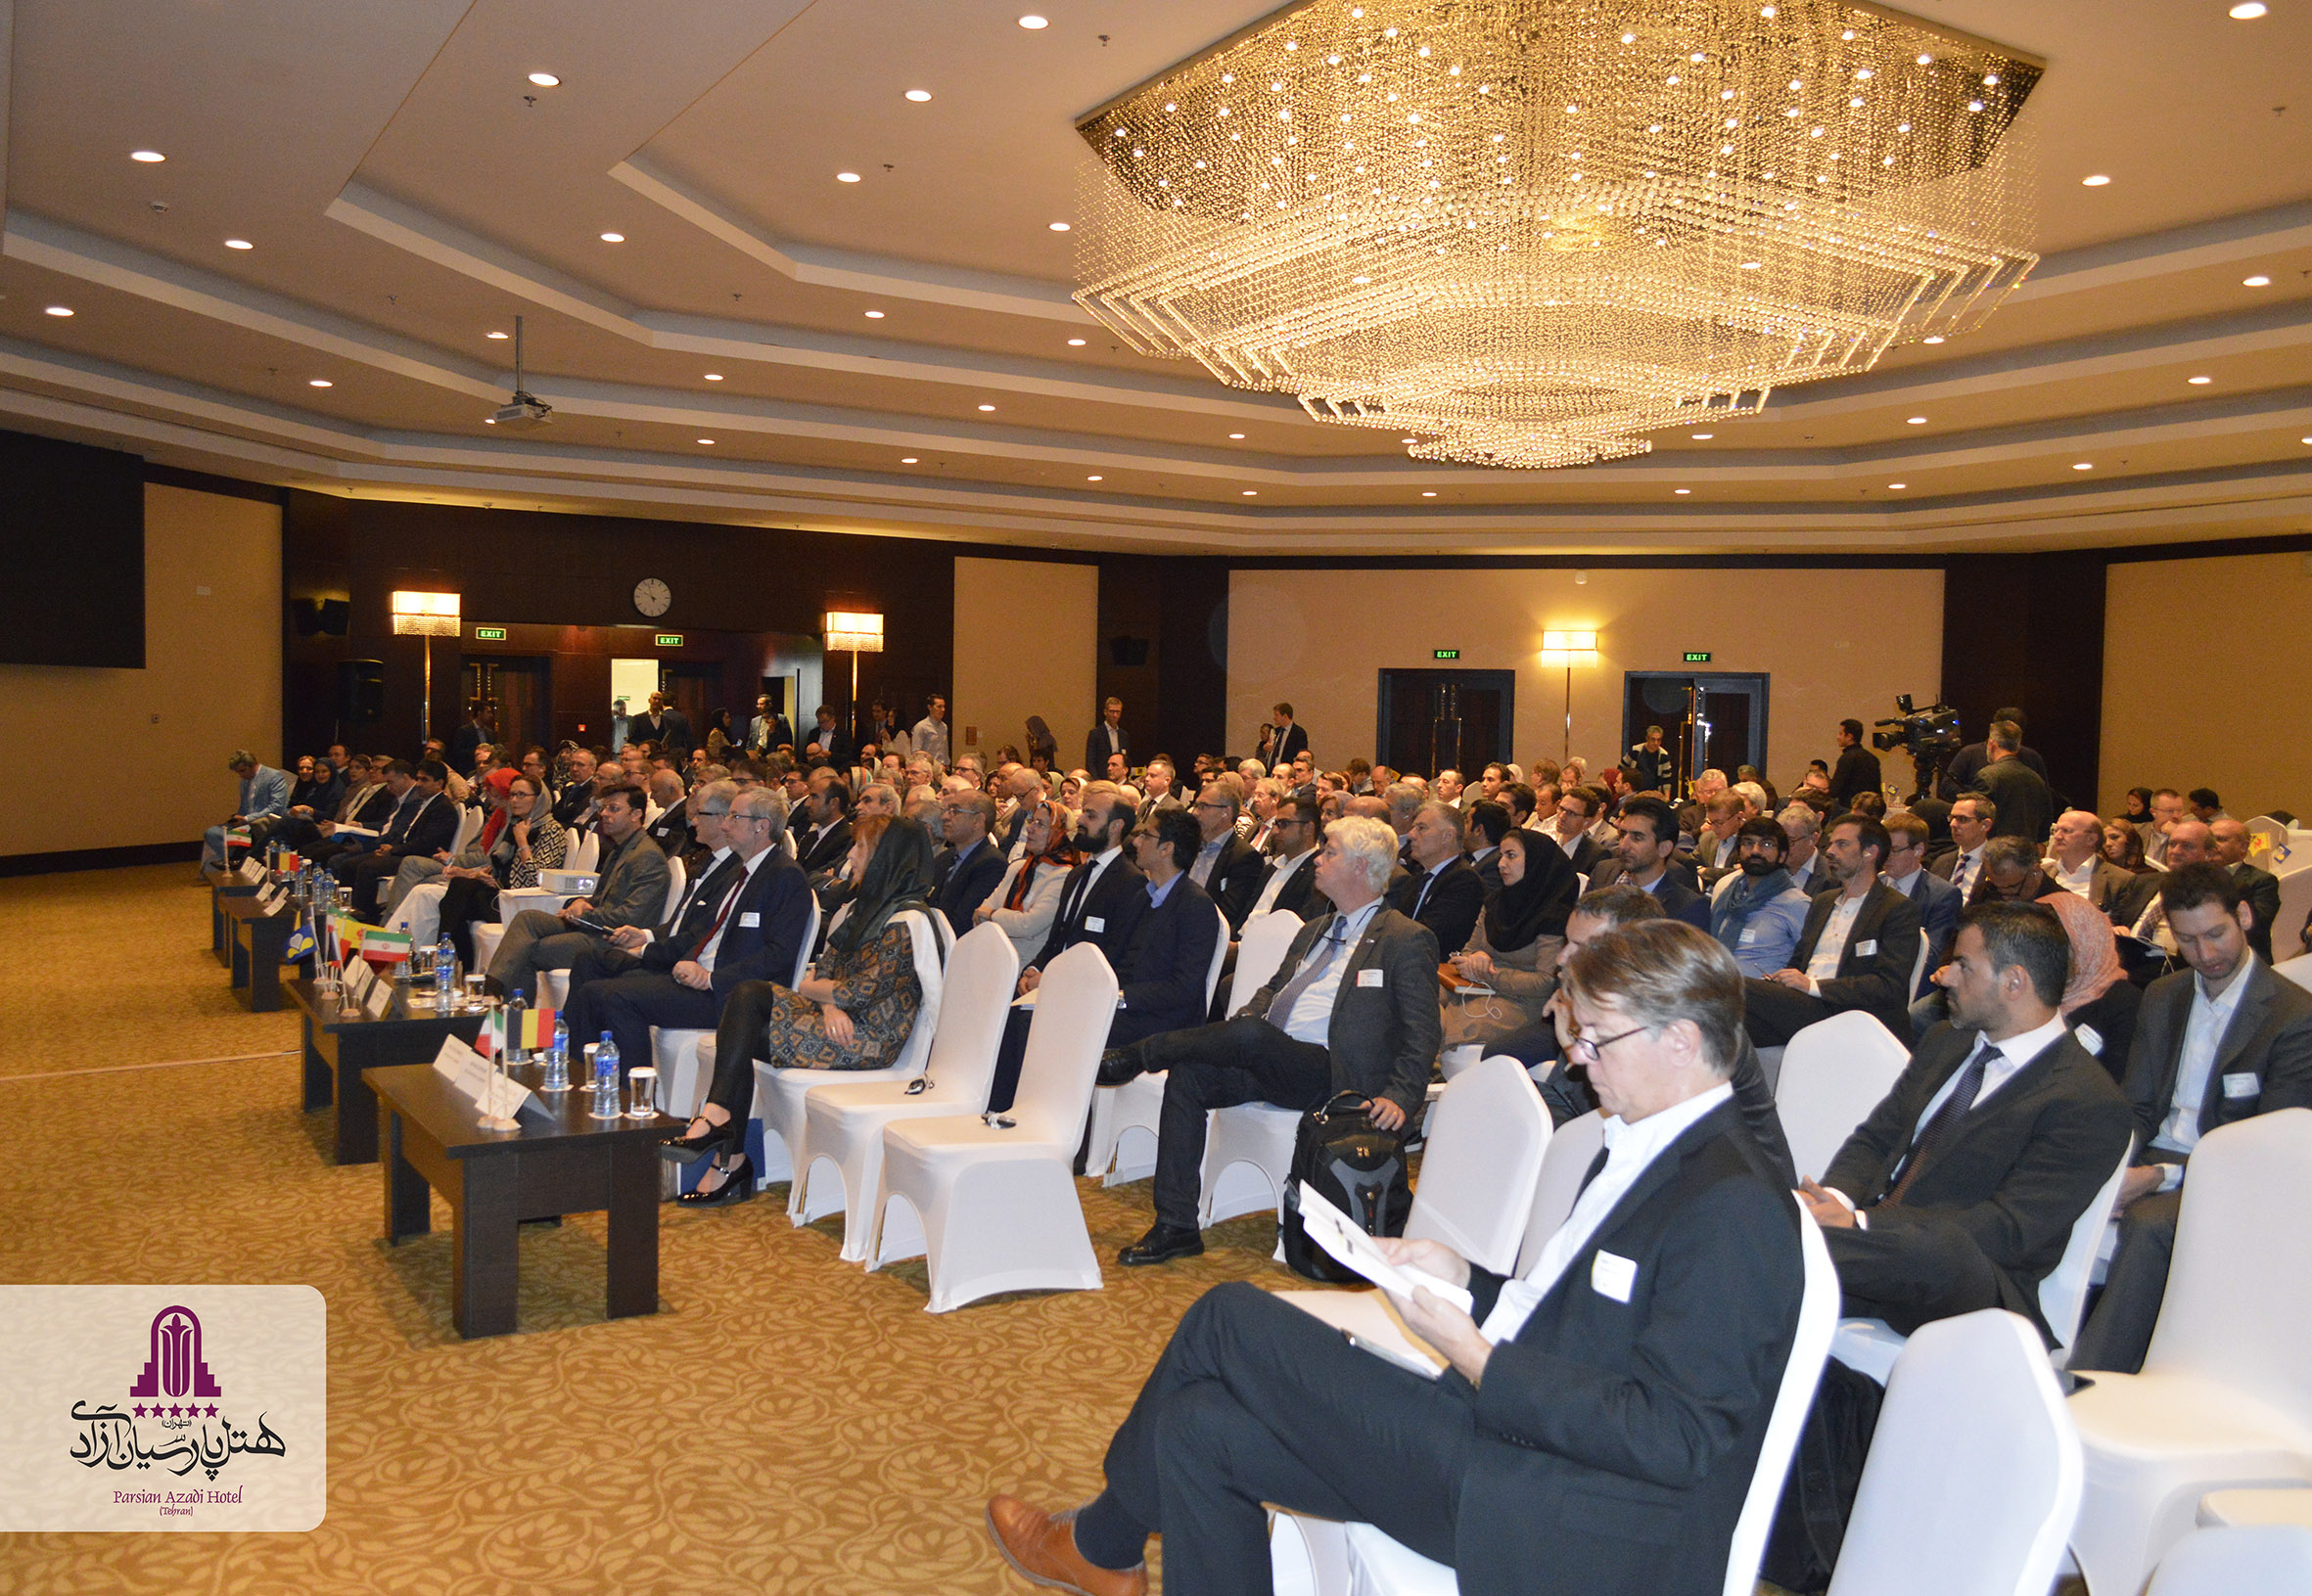 Great Commercial Conference of Iran and Belgium at Parsian Azadi Hotel